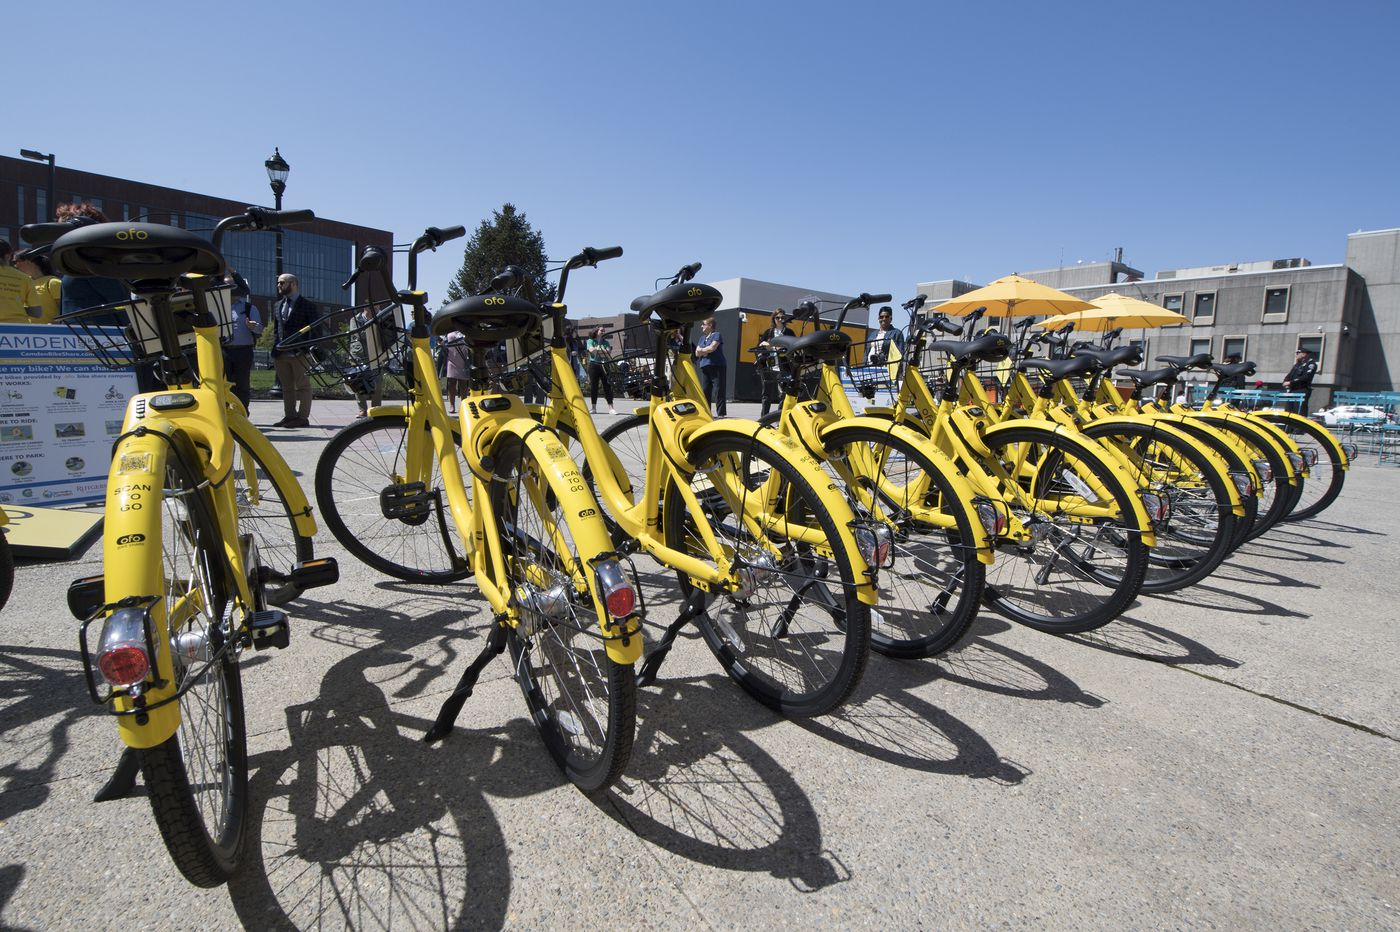 In Camden, bike sharing rolls out of town early